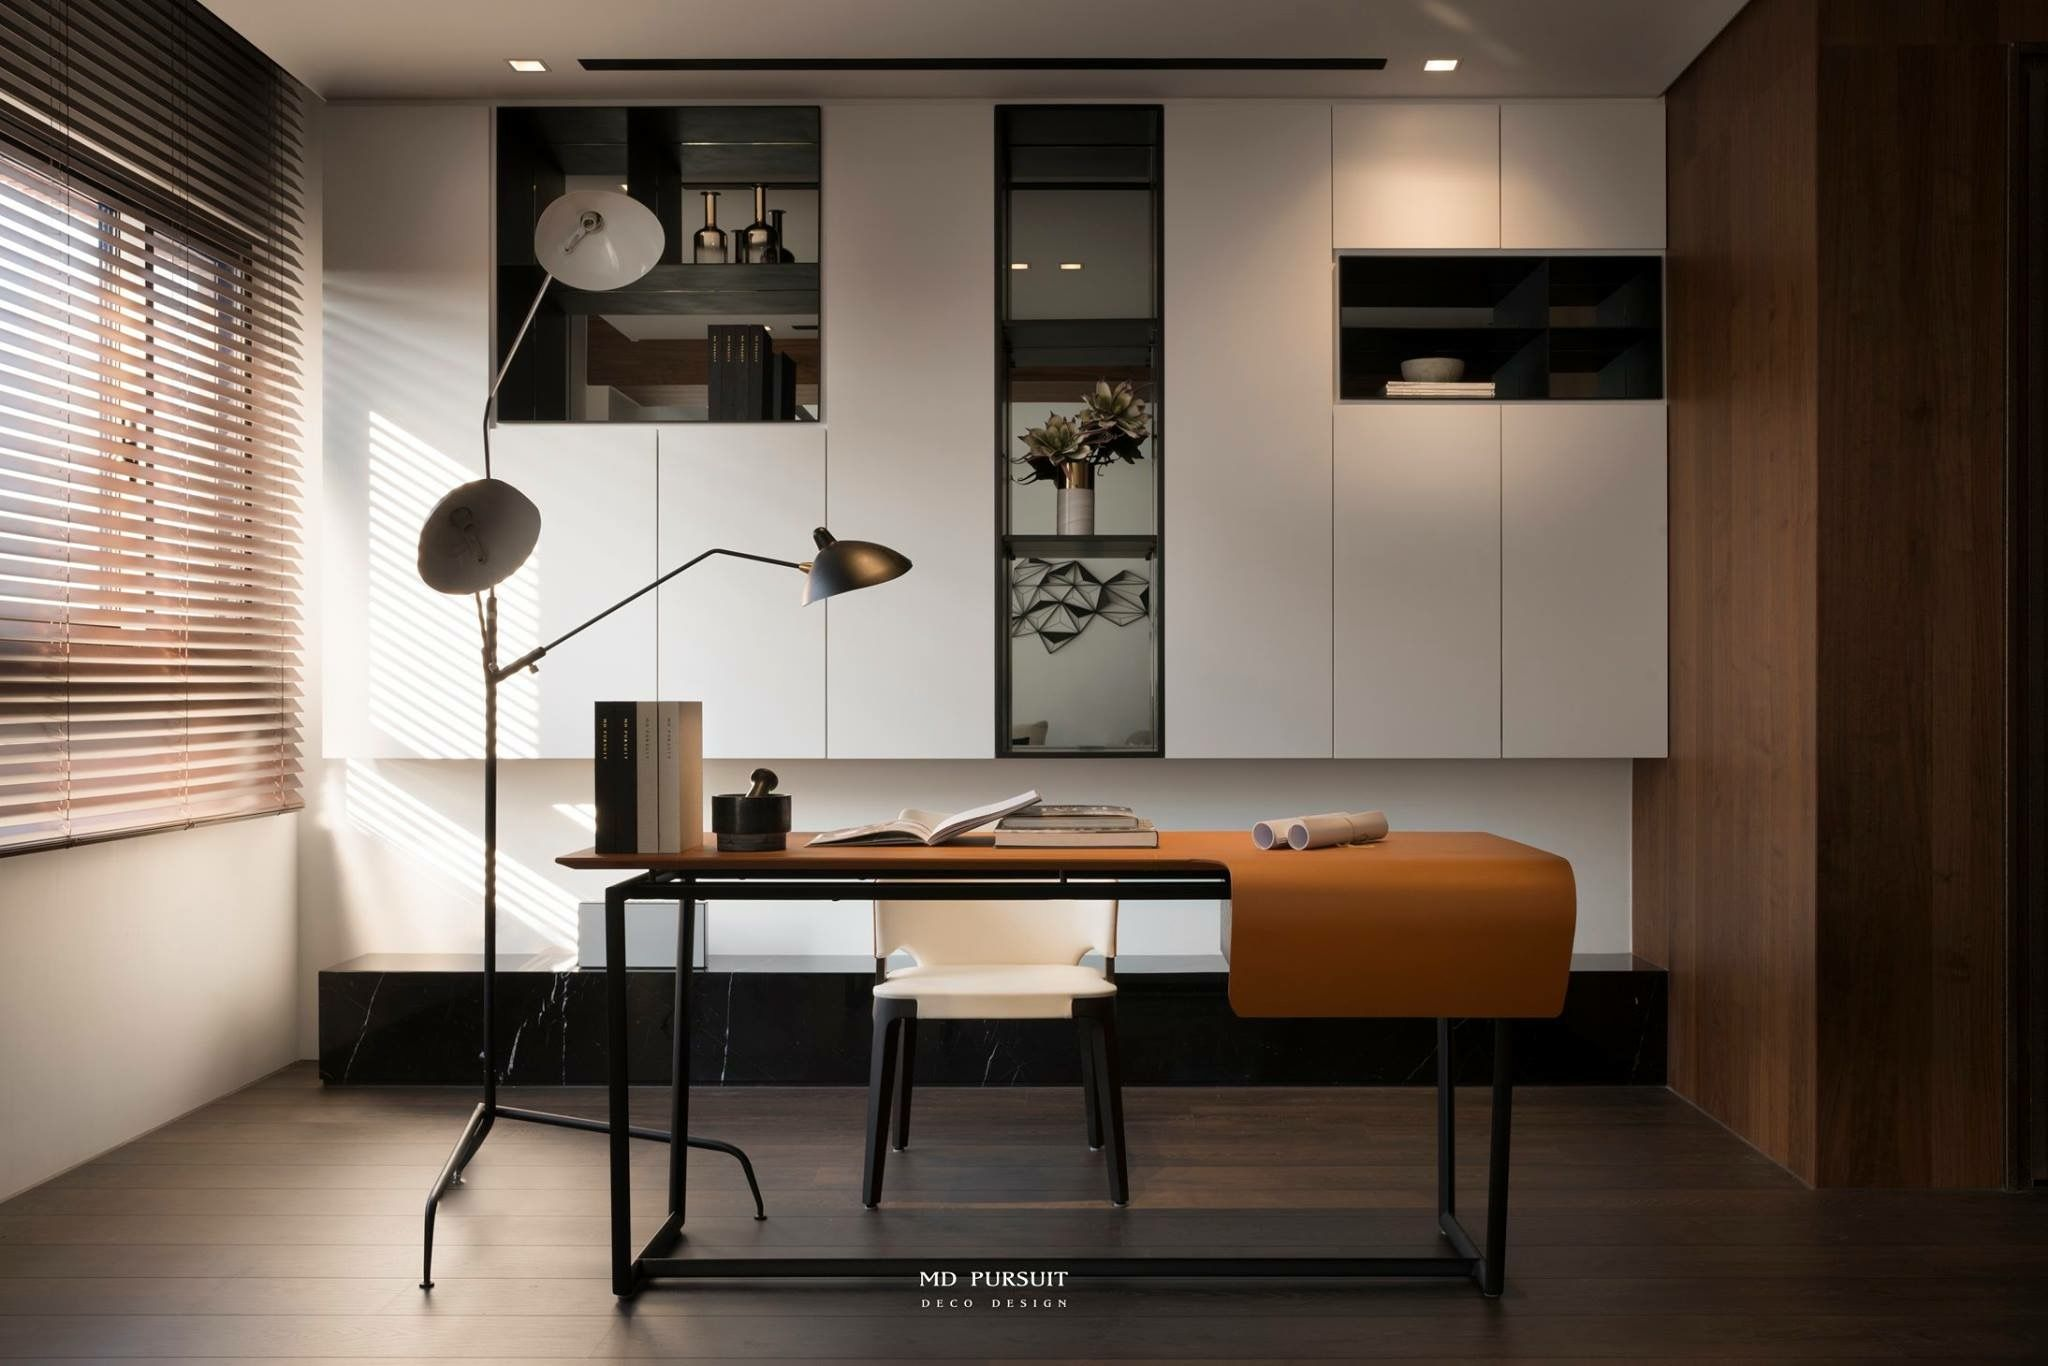 Pin By 張浚澤 On 室 書房 工作室 Study Room With Images